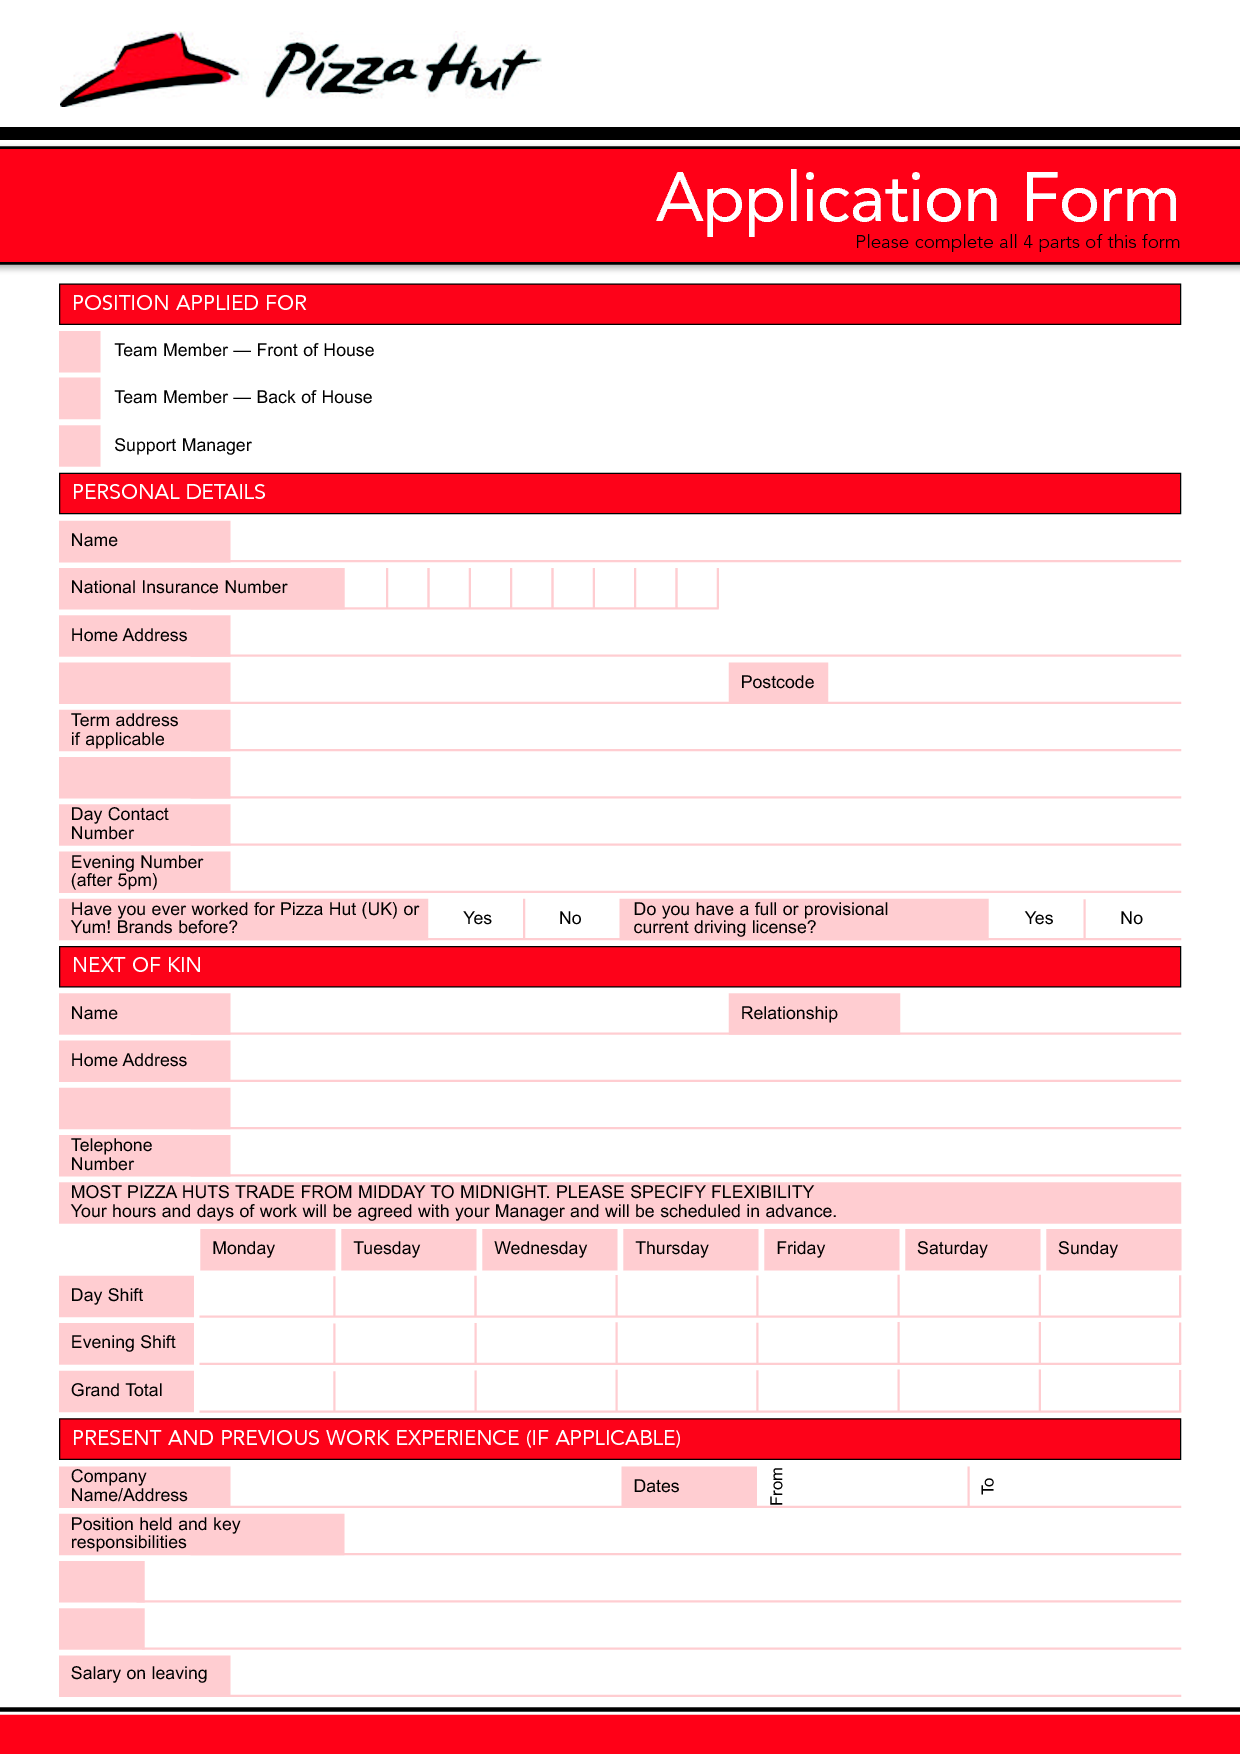 Pizza Hut Job Application Form | Application Form for Pizza Hut ...